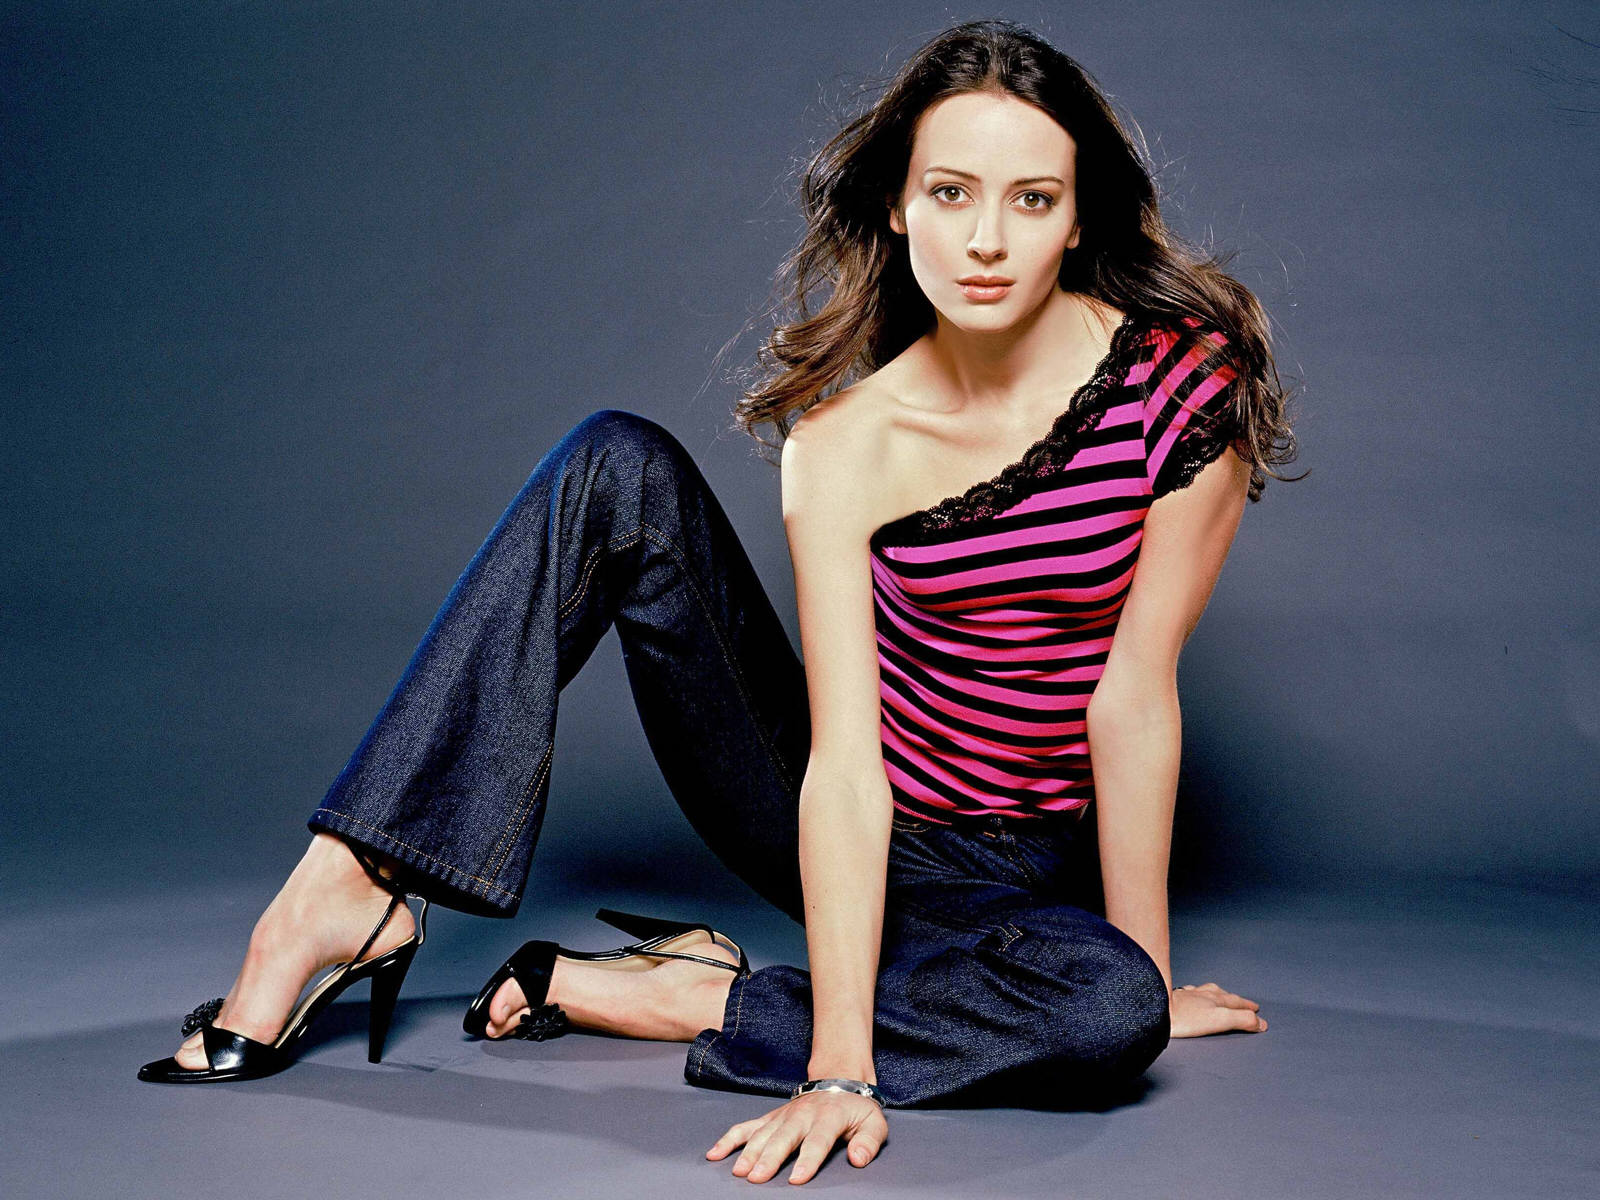 1600x1200 - Amy Acker Wallpapers 30